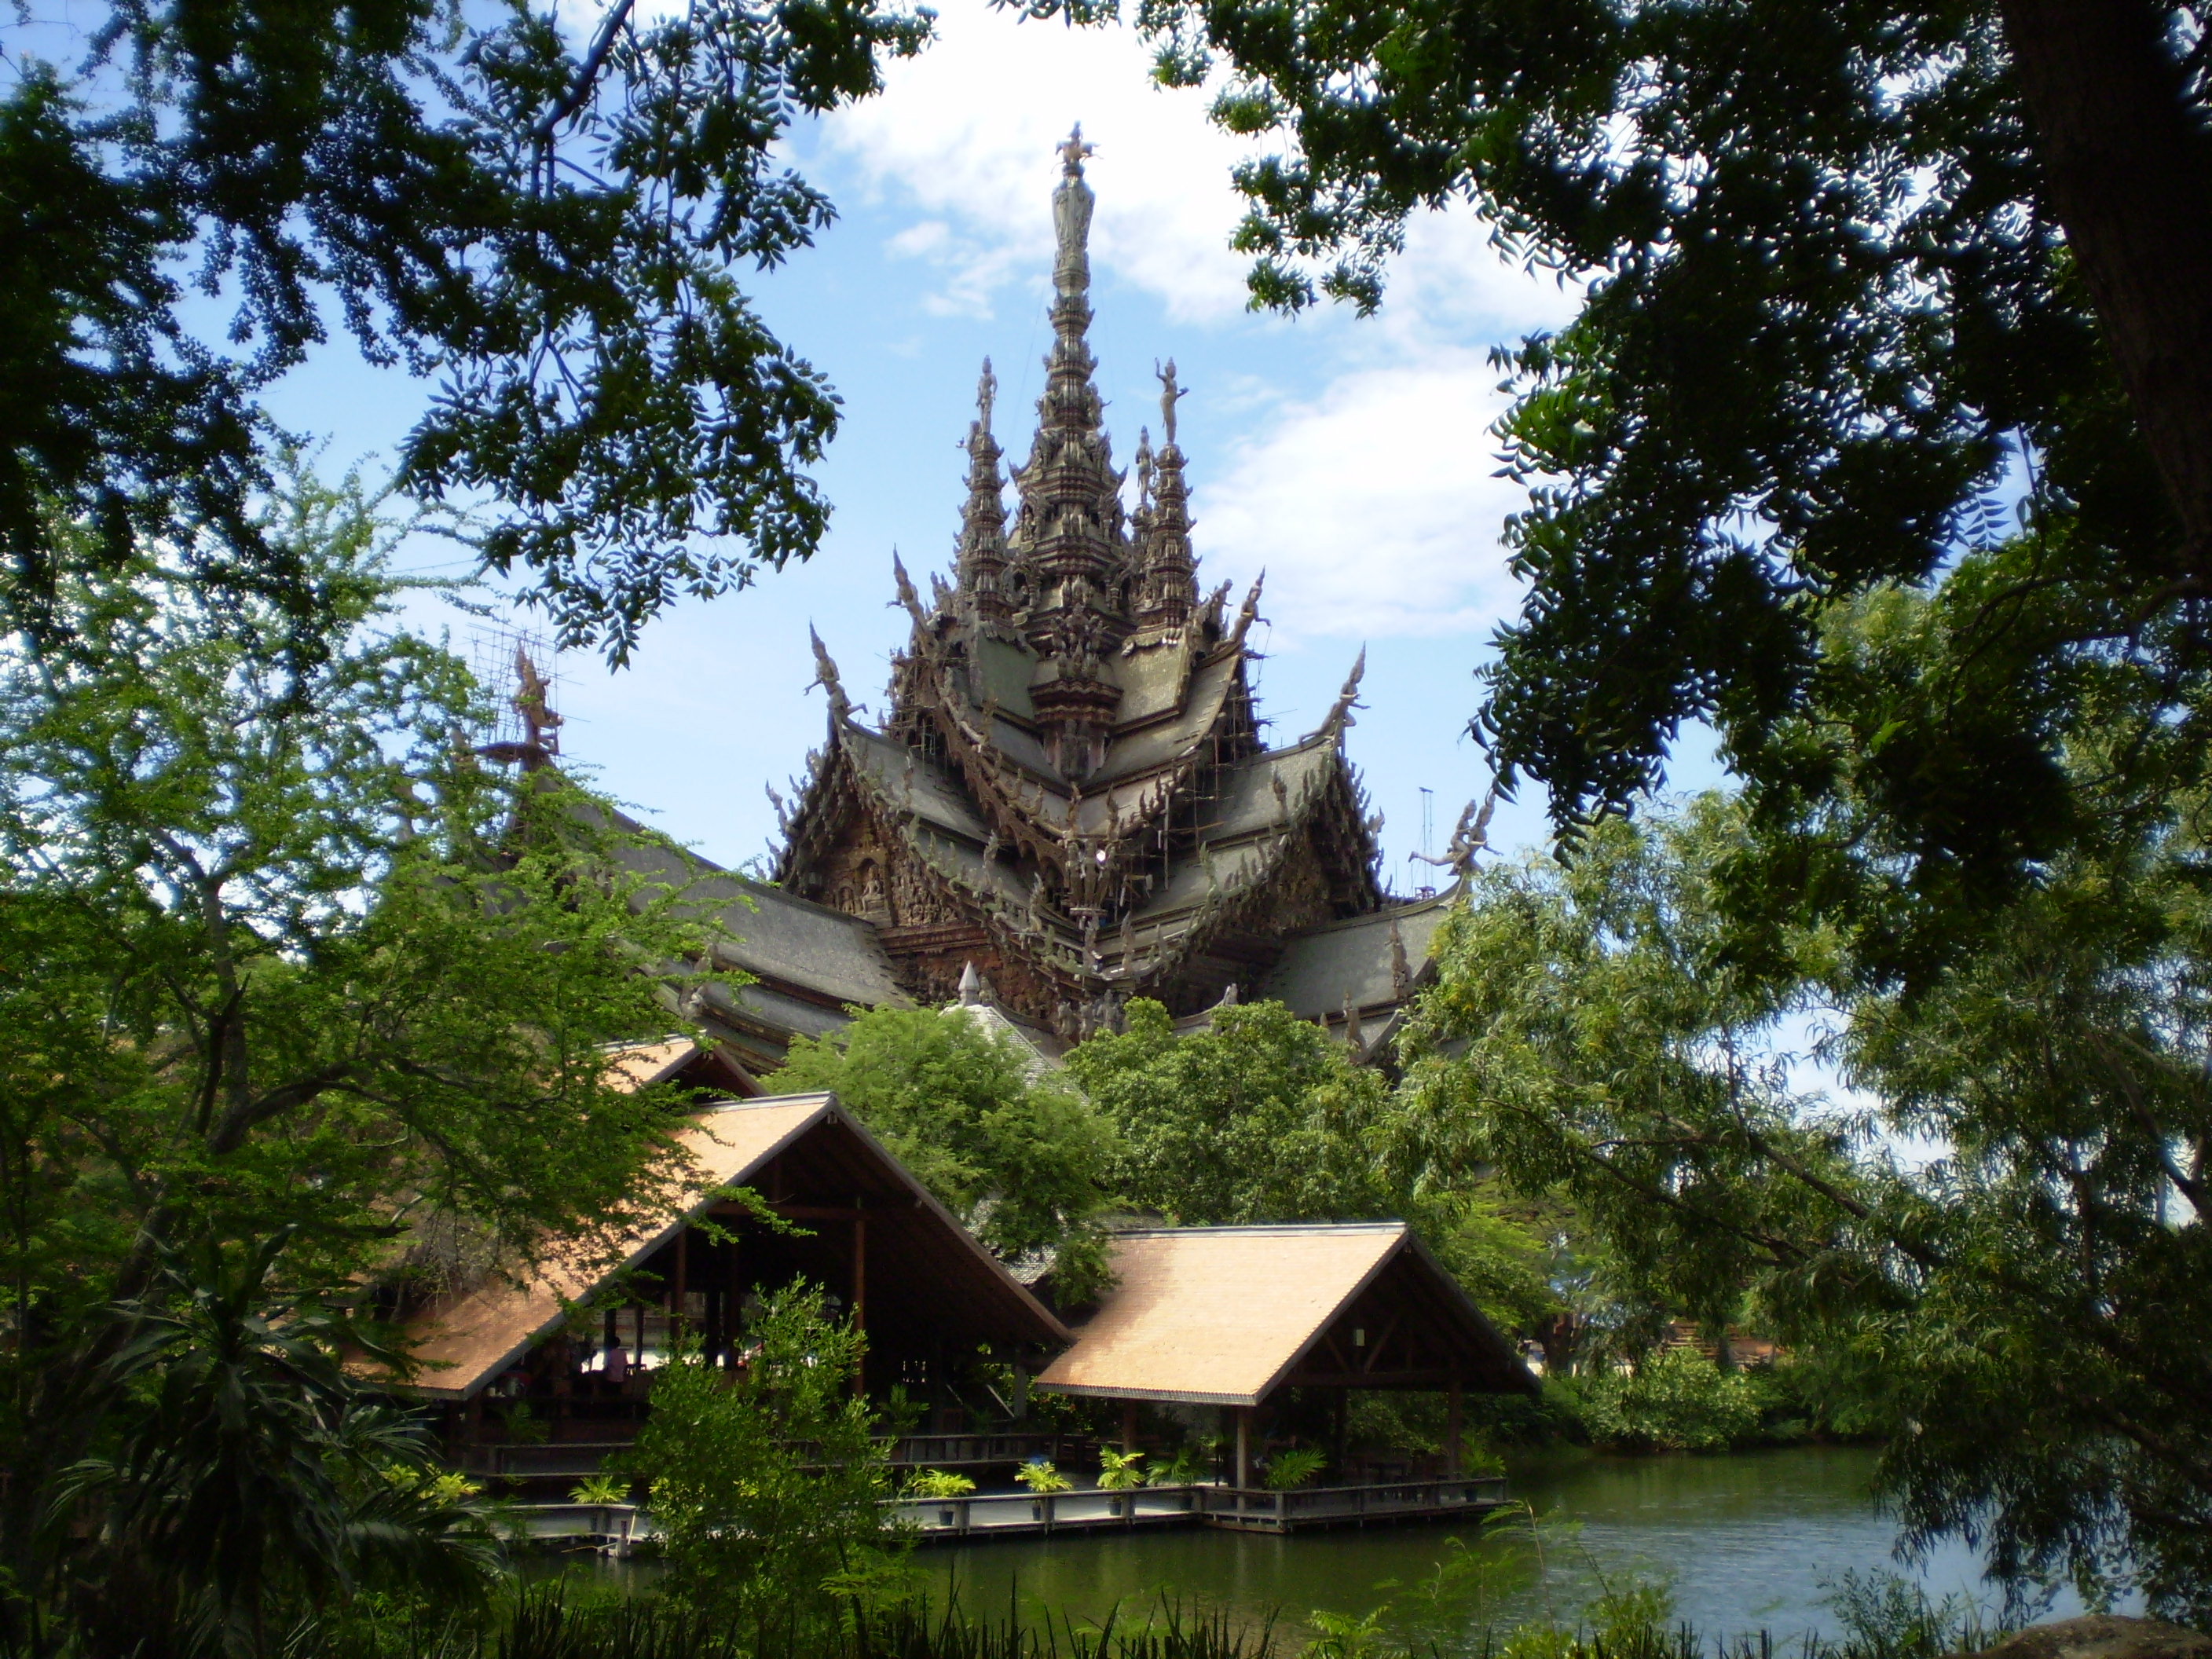 File:Sanctuary of Truth 001.JPG - Wikimedia Commons